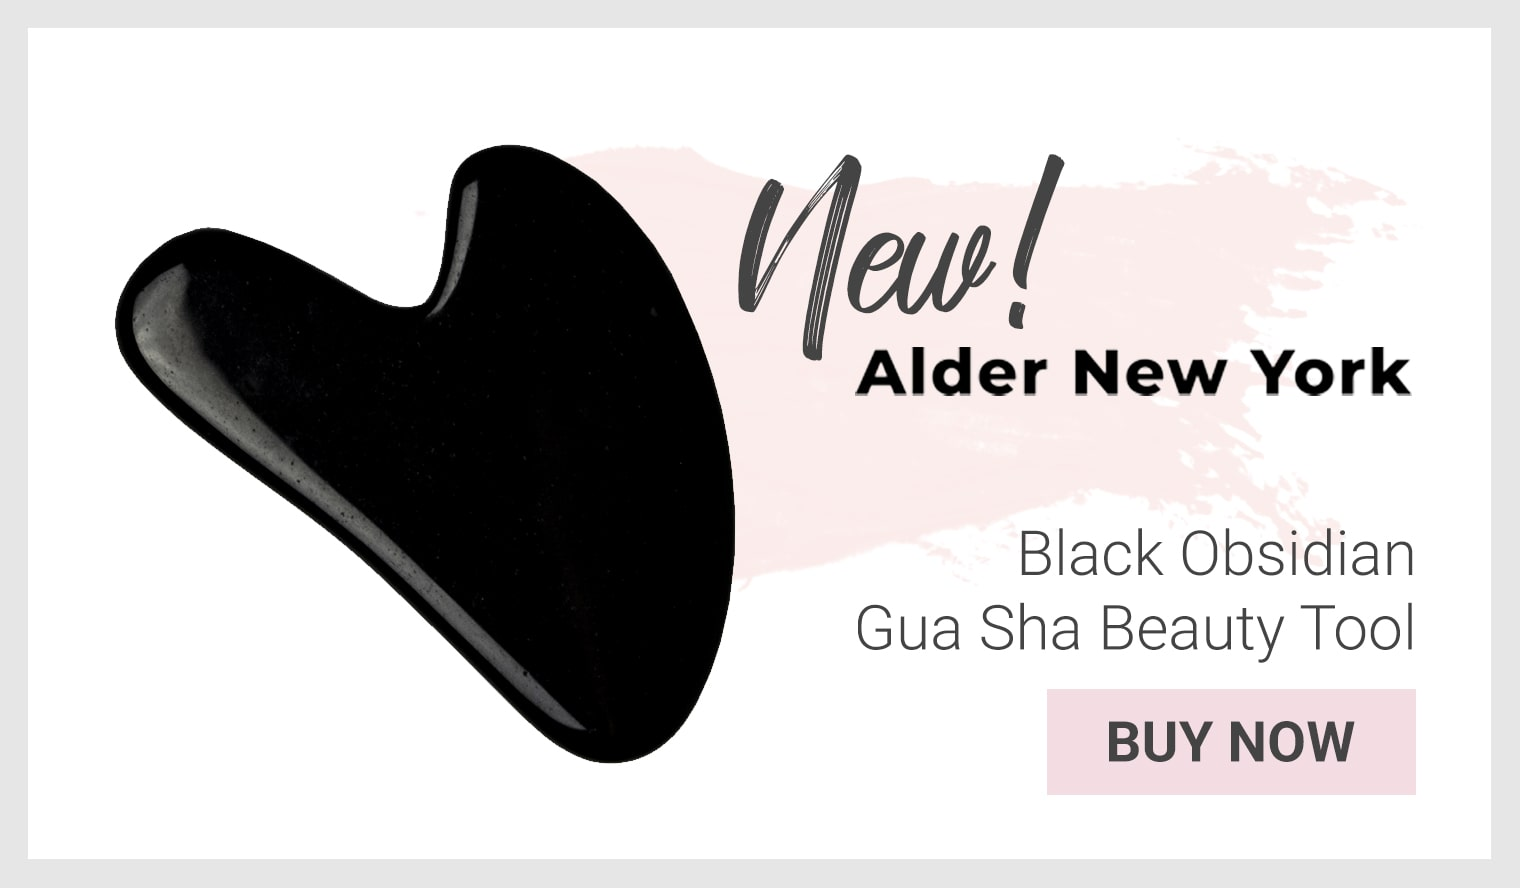 Alder New York Black Obsidian Gua Sha Beauty Tool